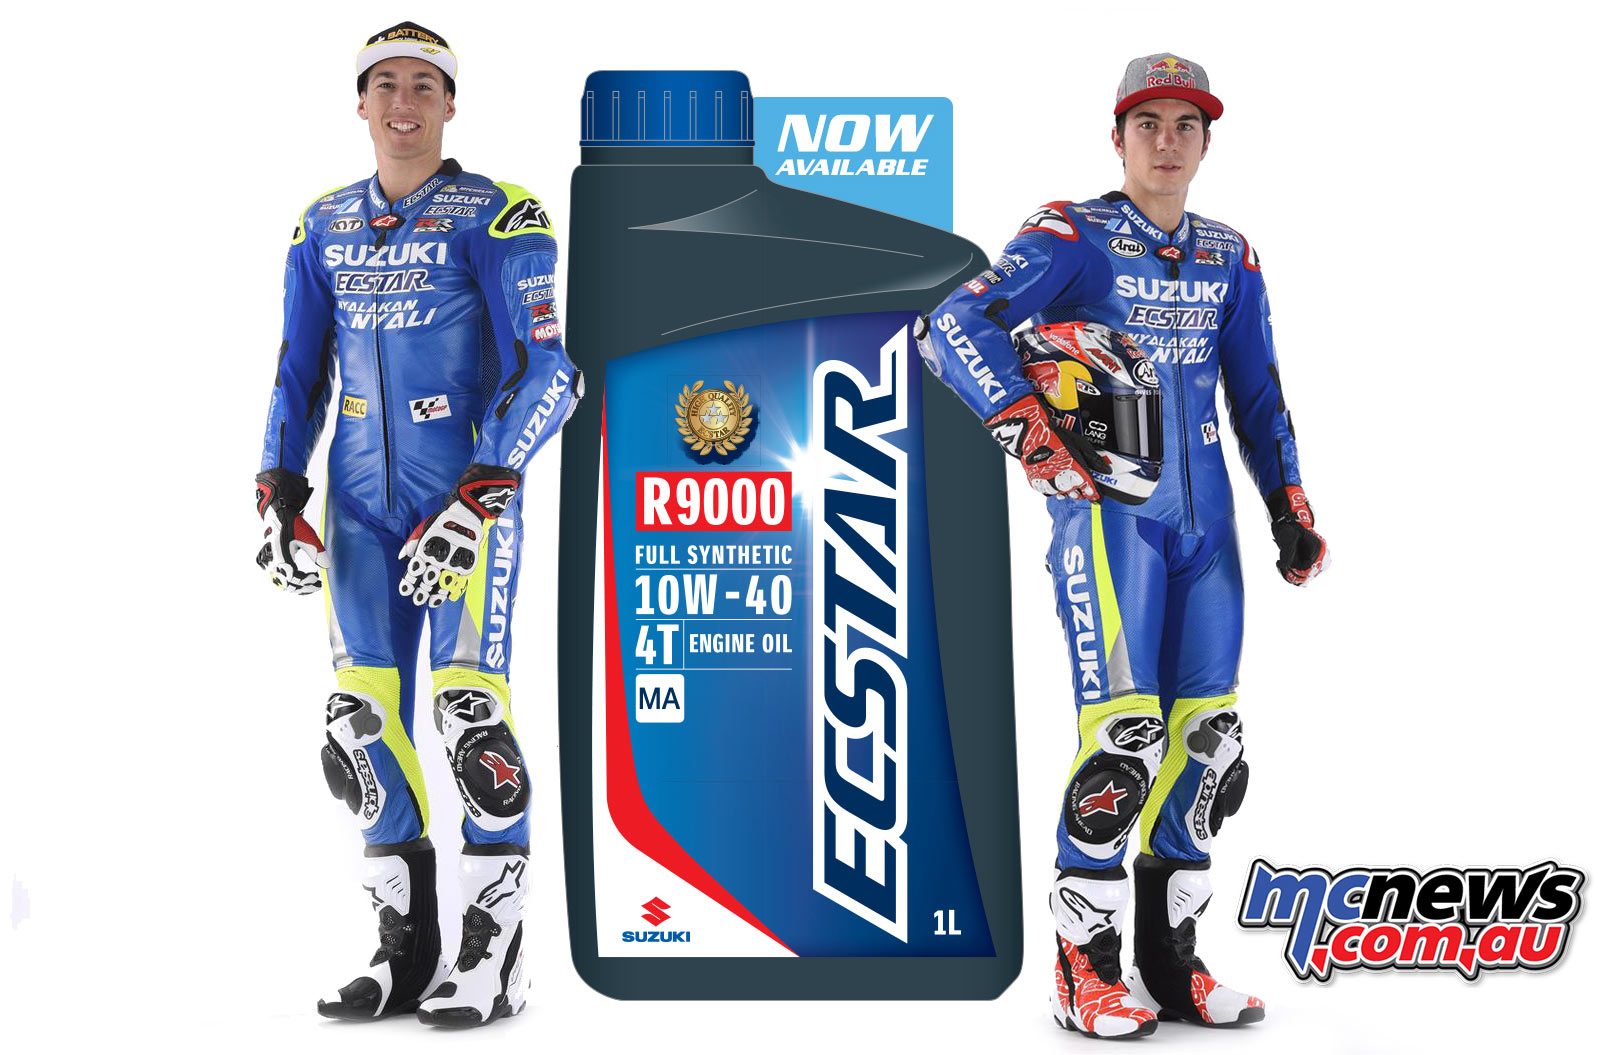 ECSTAR – Suzuki Genuine Motorcycle Oil, teamed with MotoGP riders riders Maverick Viñales and Aleix Espargaro